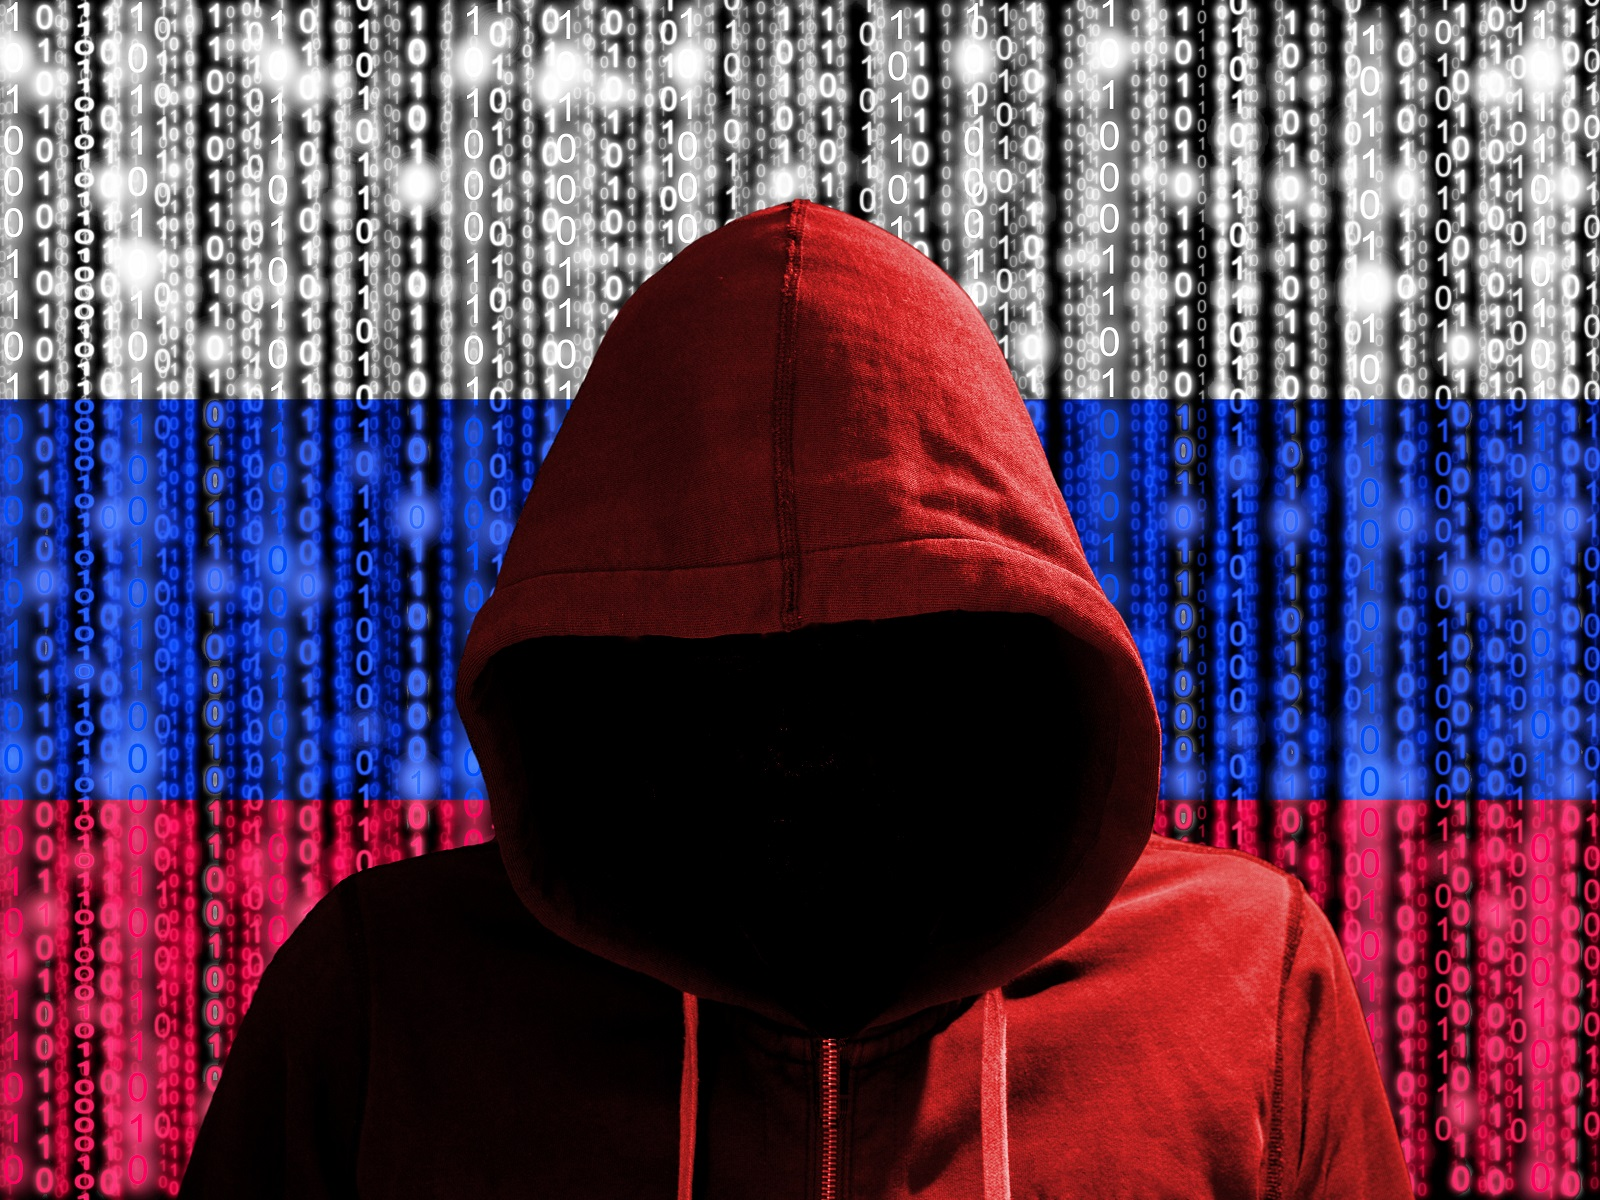 VPN Providers Defy Order to Connect to Russia's Internet Sensor